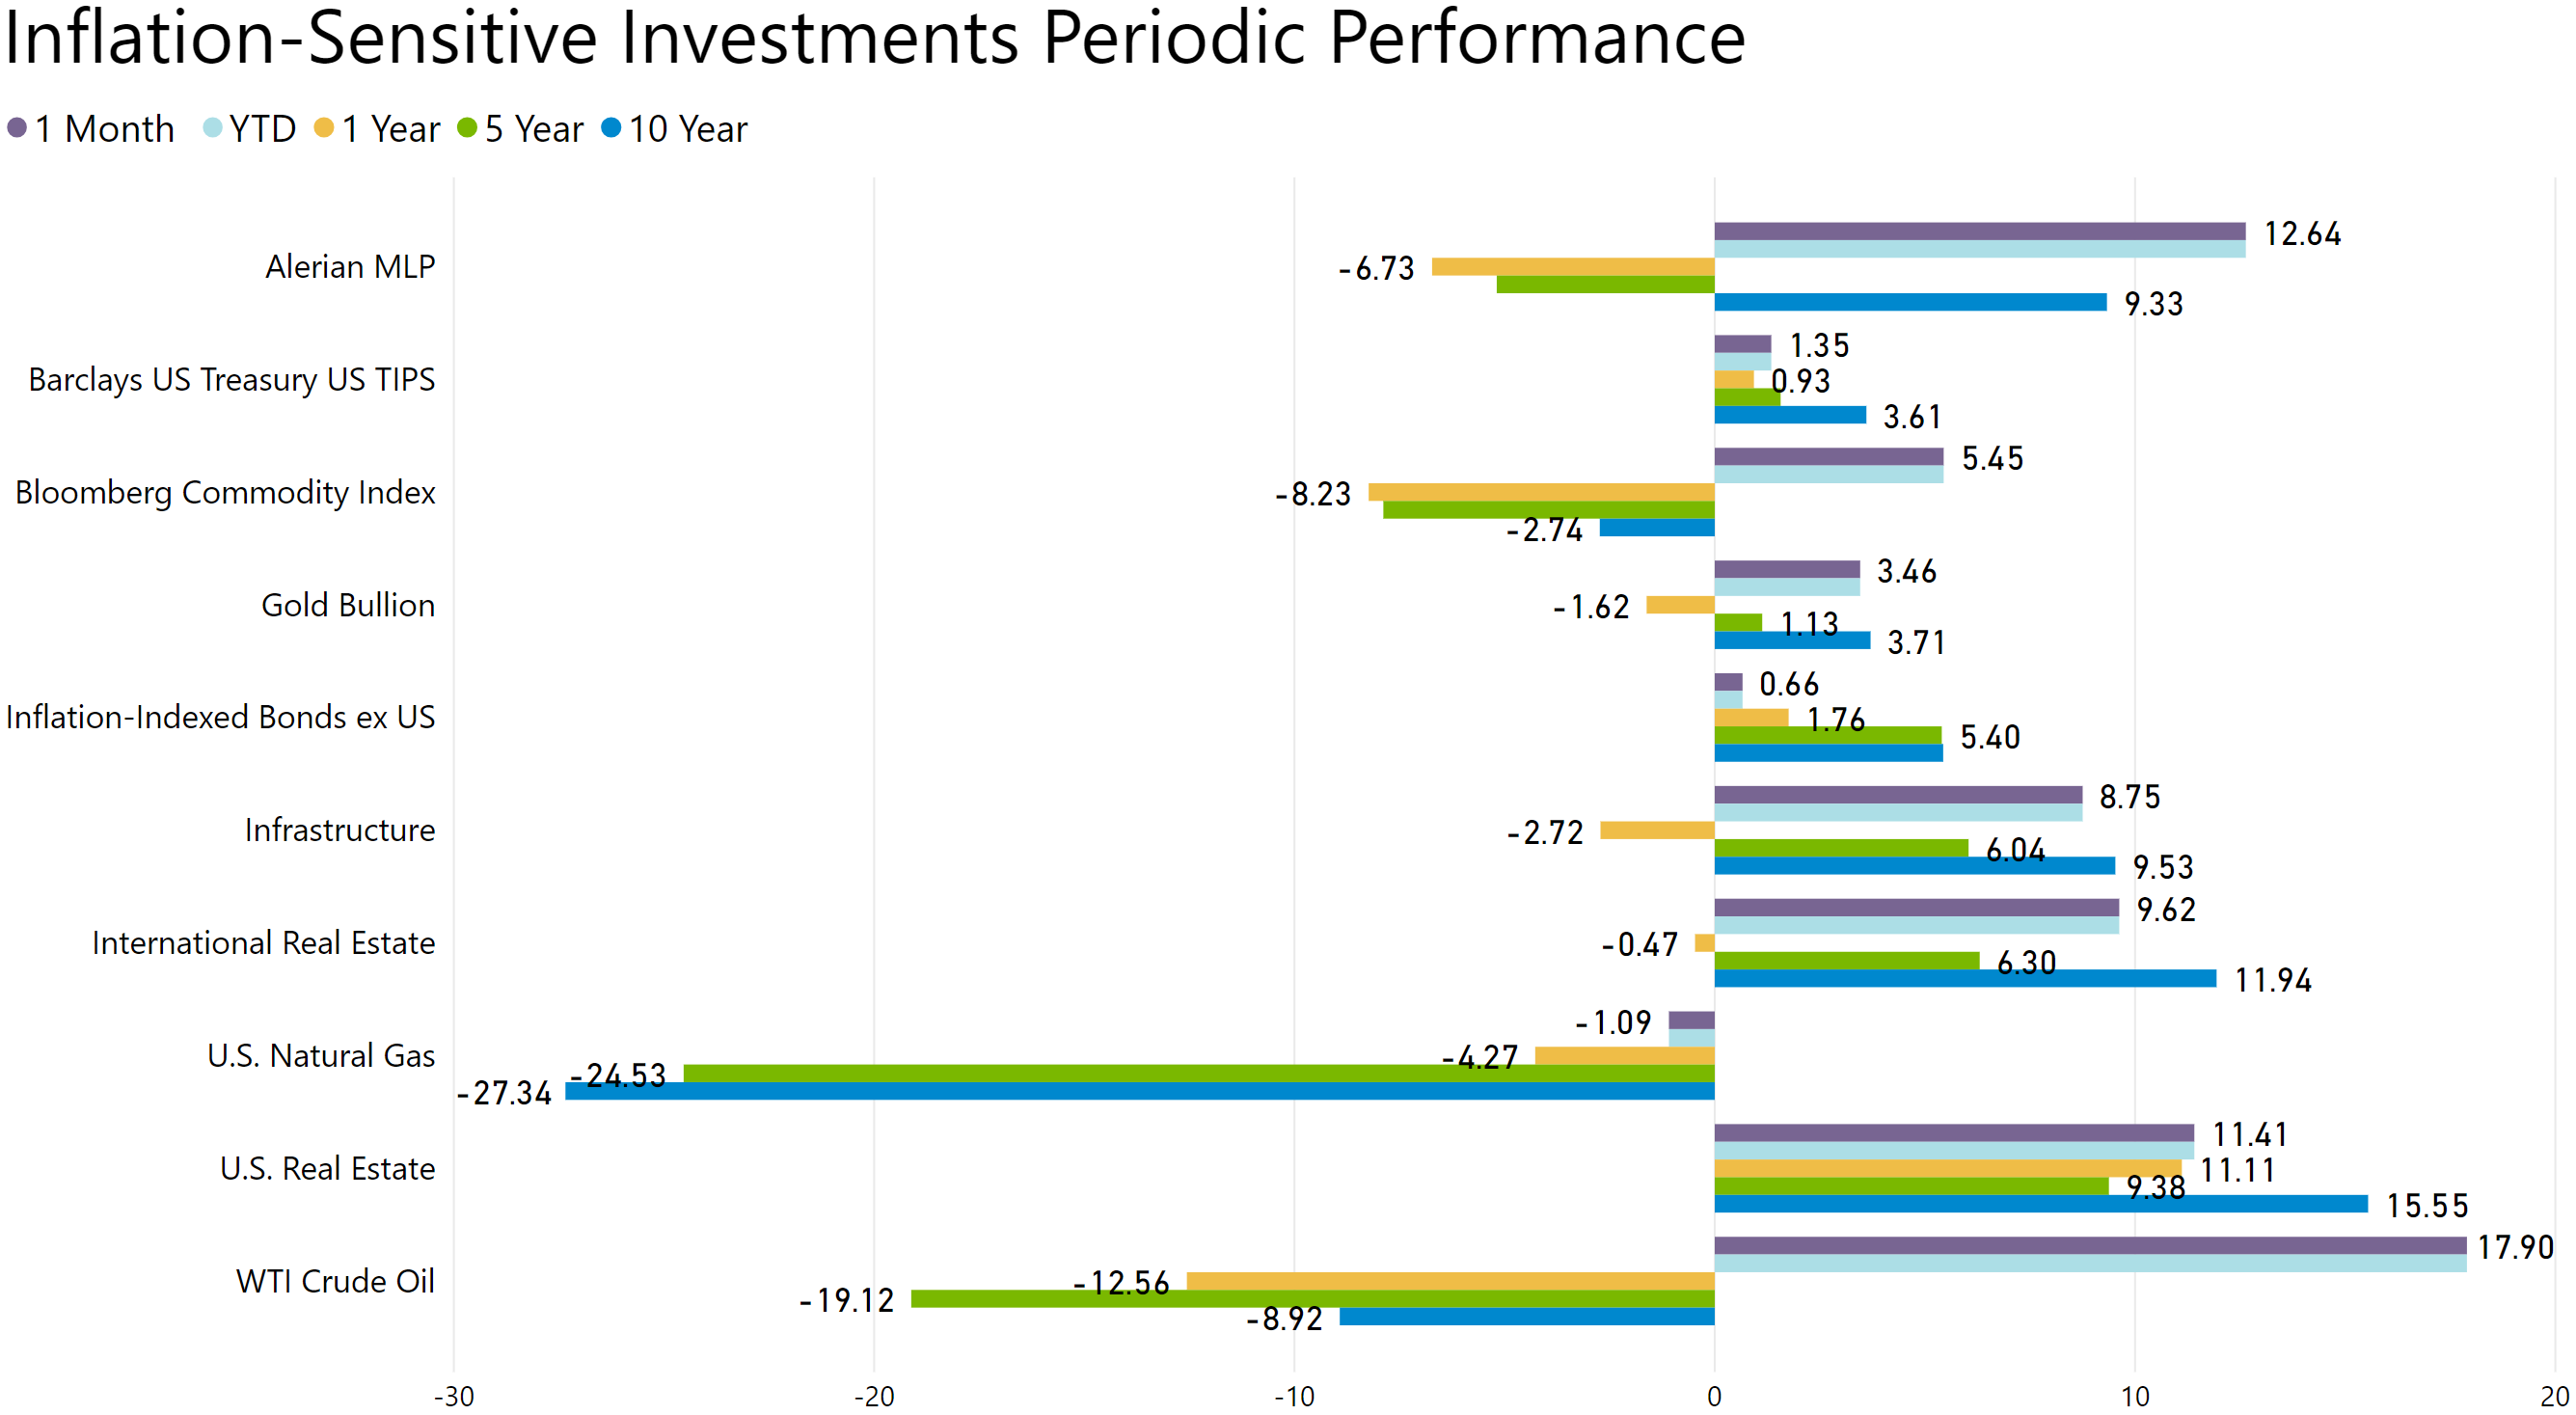 inflation-sensitive investments